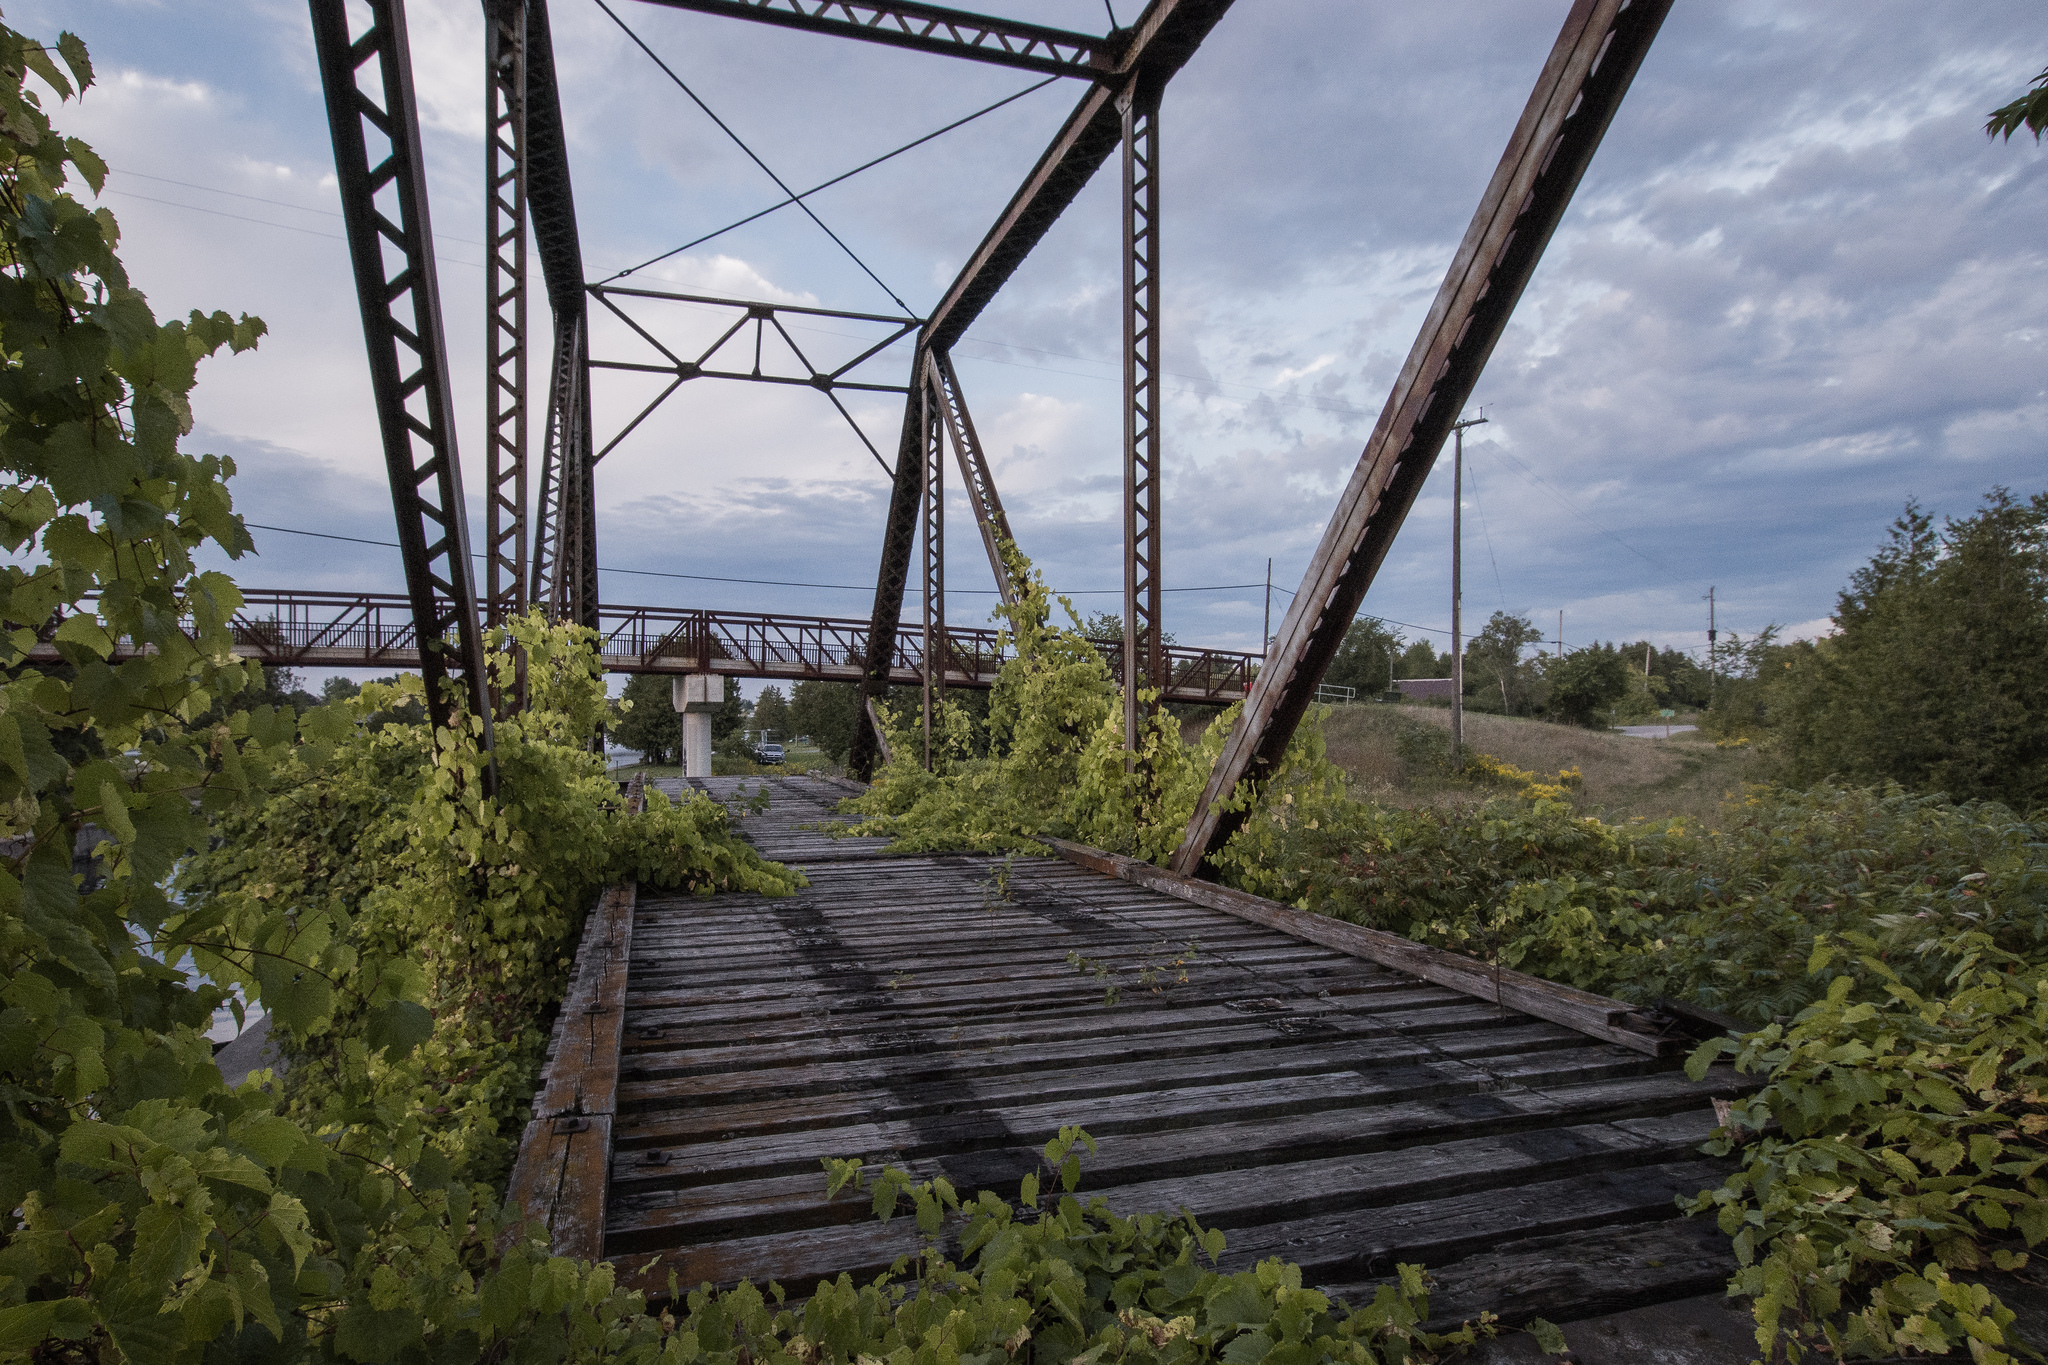 Overgrown Swinging Rail Bridge (1/125s, f/11, ISO1600)